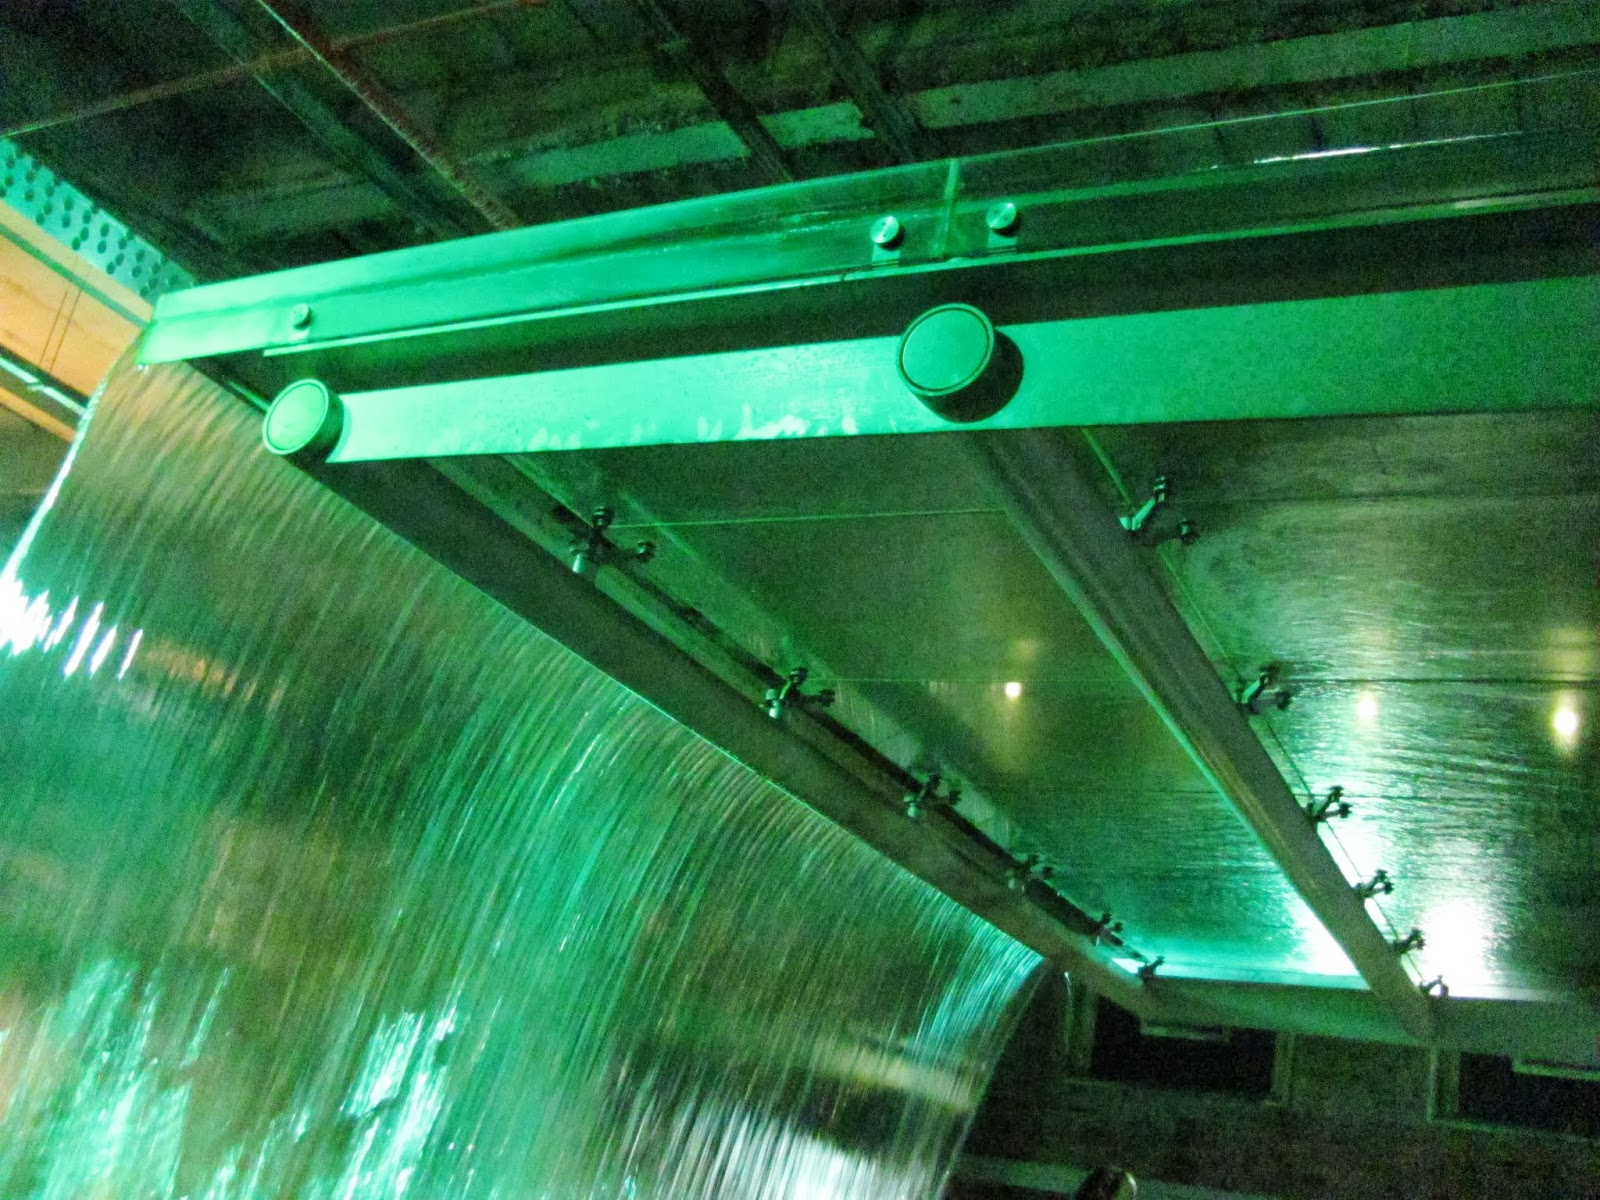 The tour goes under the fountain at the Guinness Storehouse, Dublin, Ireland